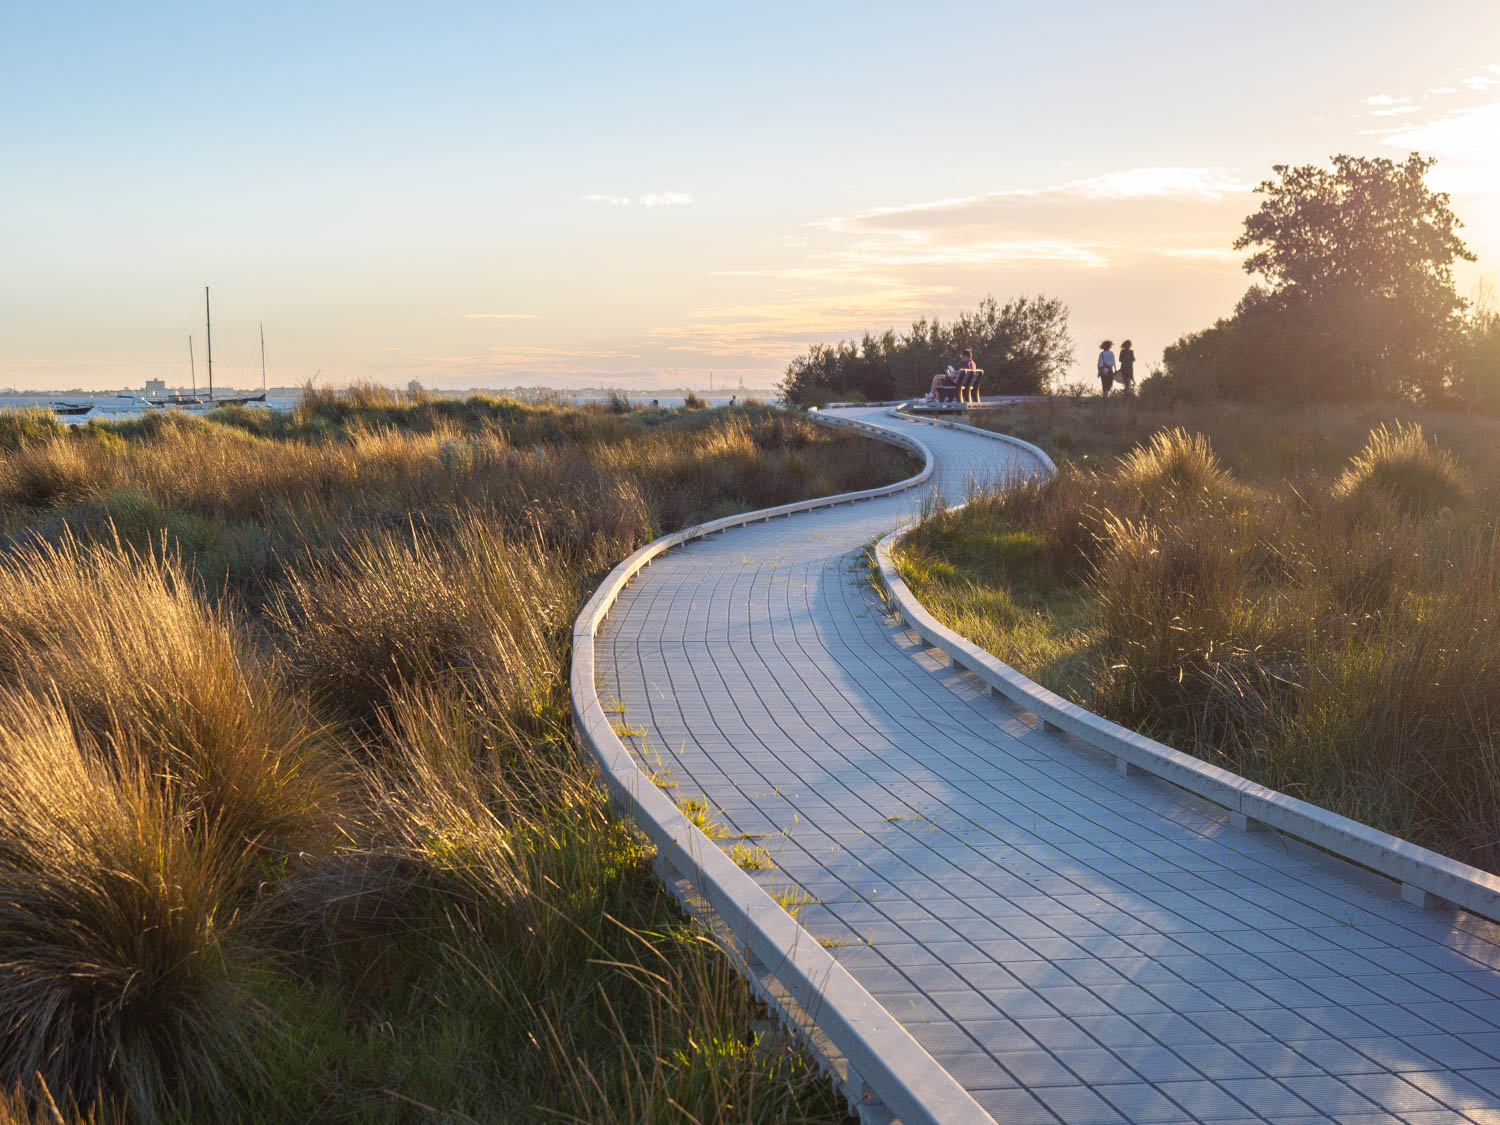 Great walkways through the reeds at St Kilda beach, Melbourne.